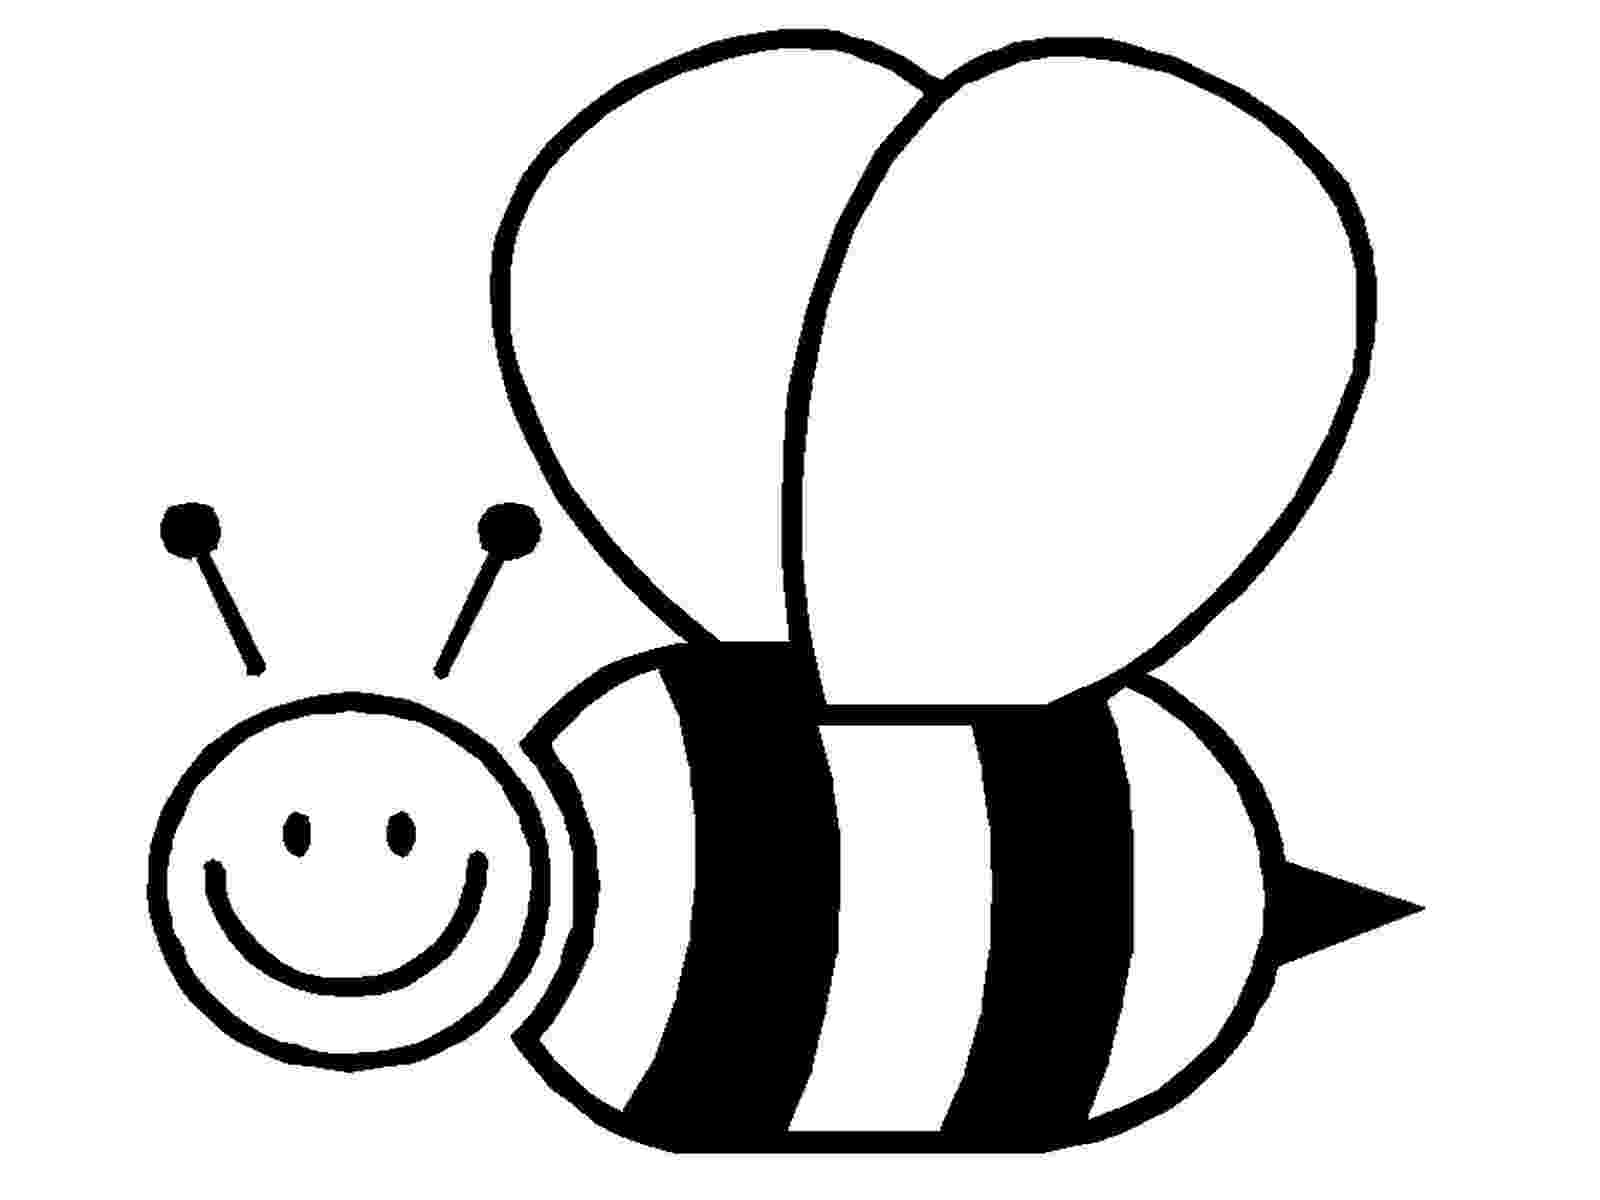 bumble bee coloring pages printable free printable bumble bee coloring pages for kids bumble coloring pages printable bee